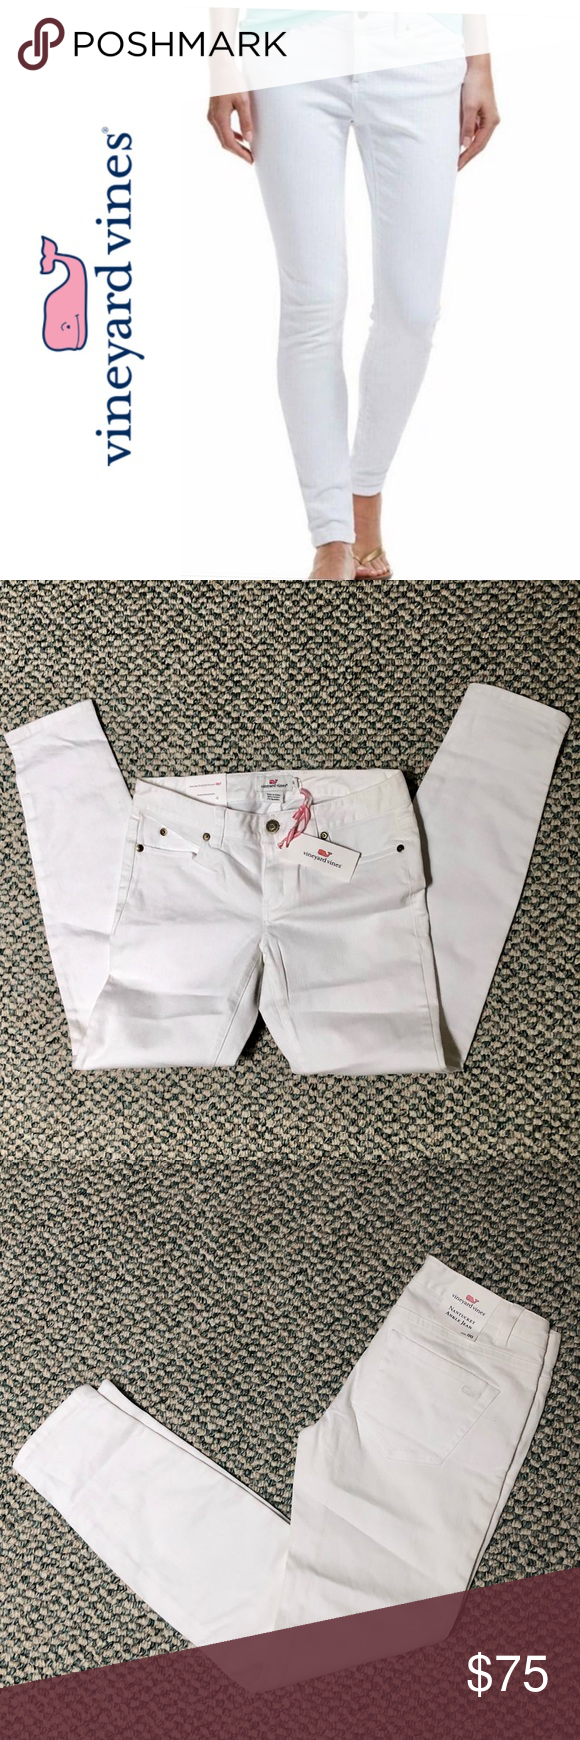 NWT Vineyard Vines Nantucket Ankle Jean NWT Vineyard Vines Nantucket Ankle Jean size 00 all white as pictured  great for everydayoutingvacation etc Vineyard Vines Jeans